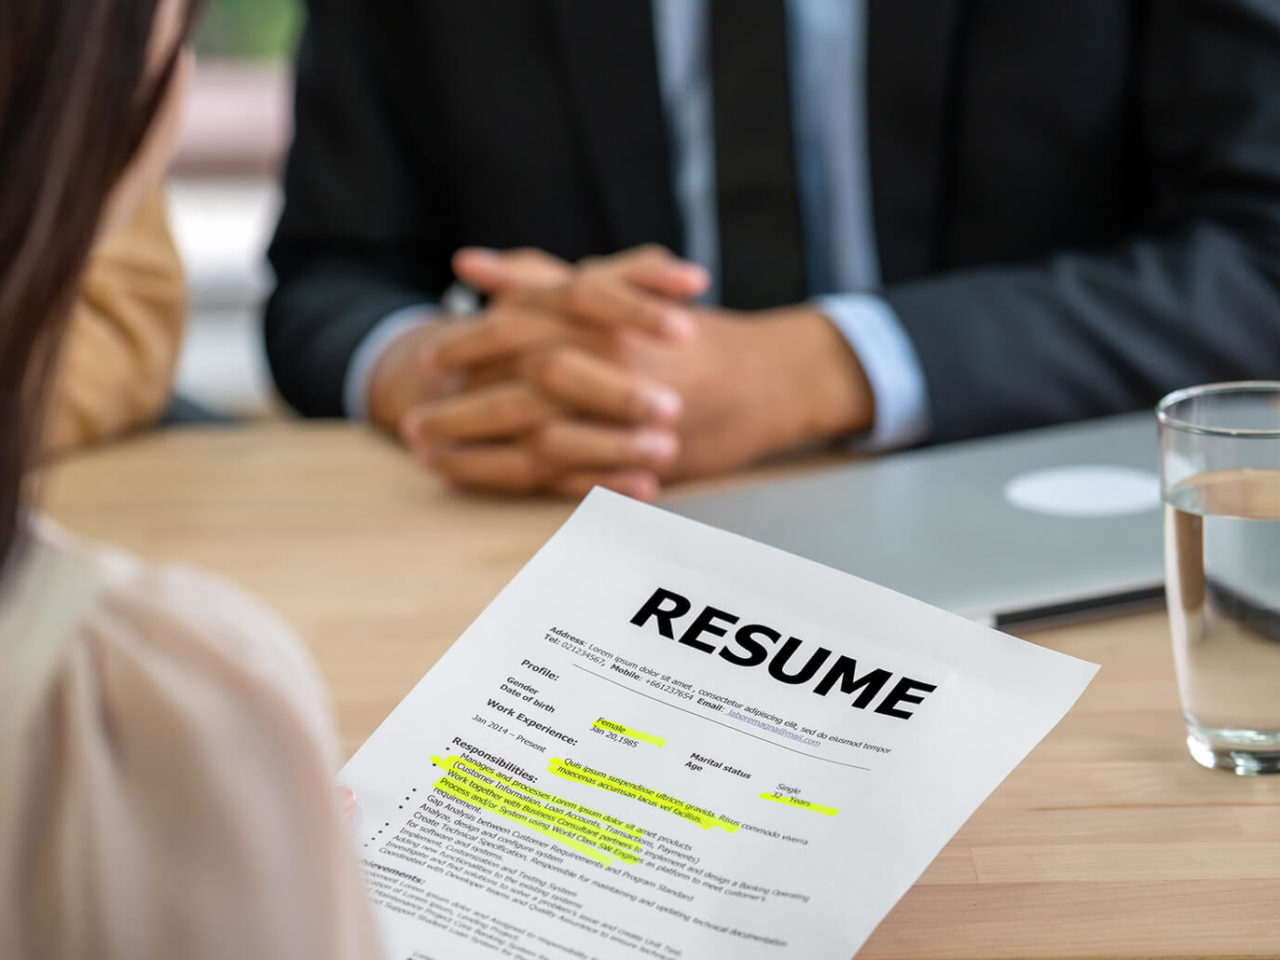 5 Best ways to Structure a CV that will get you Noticed